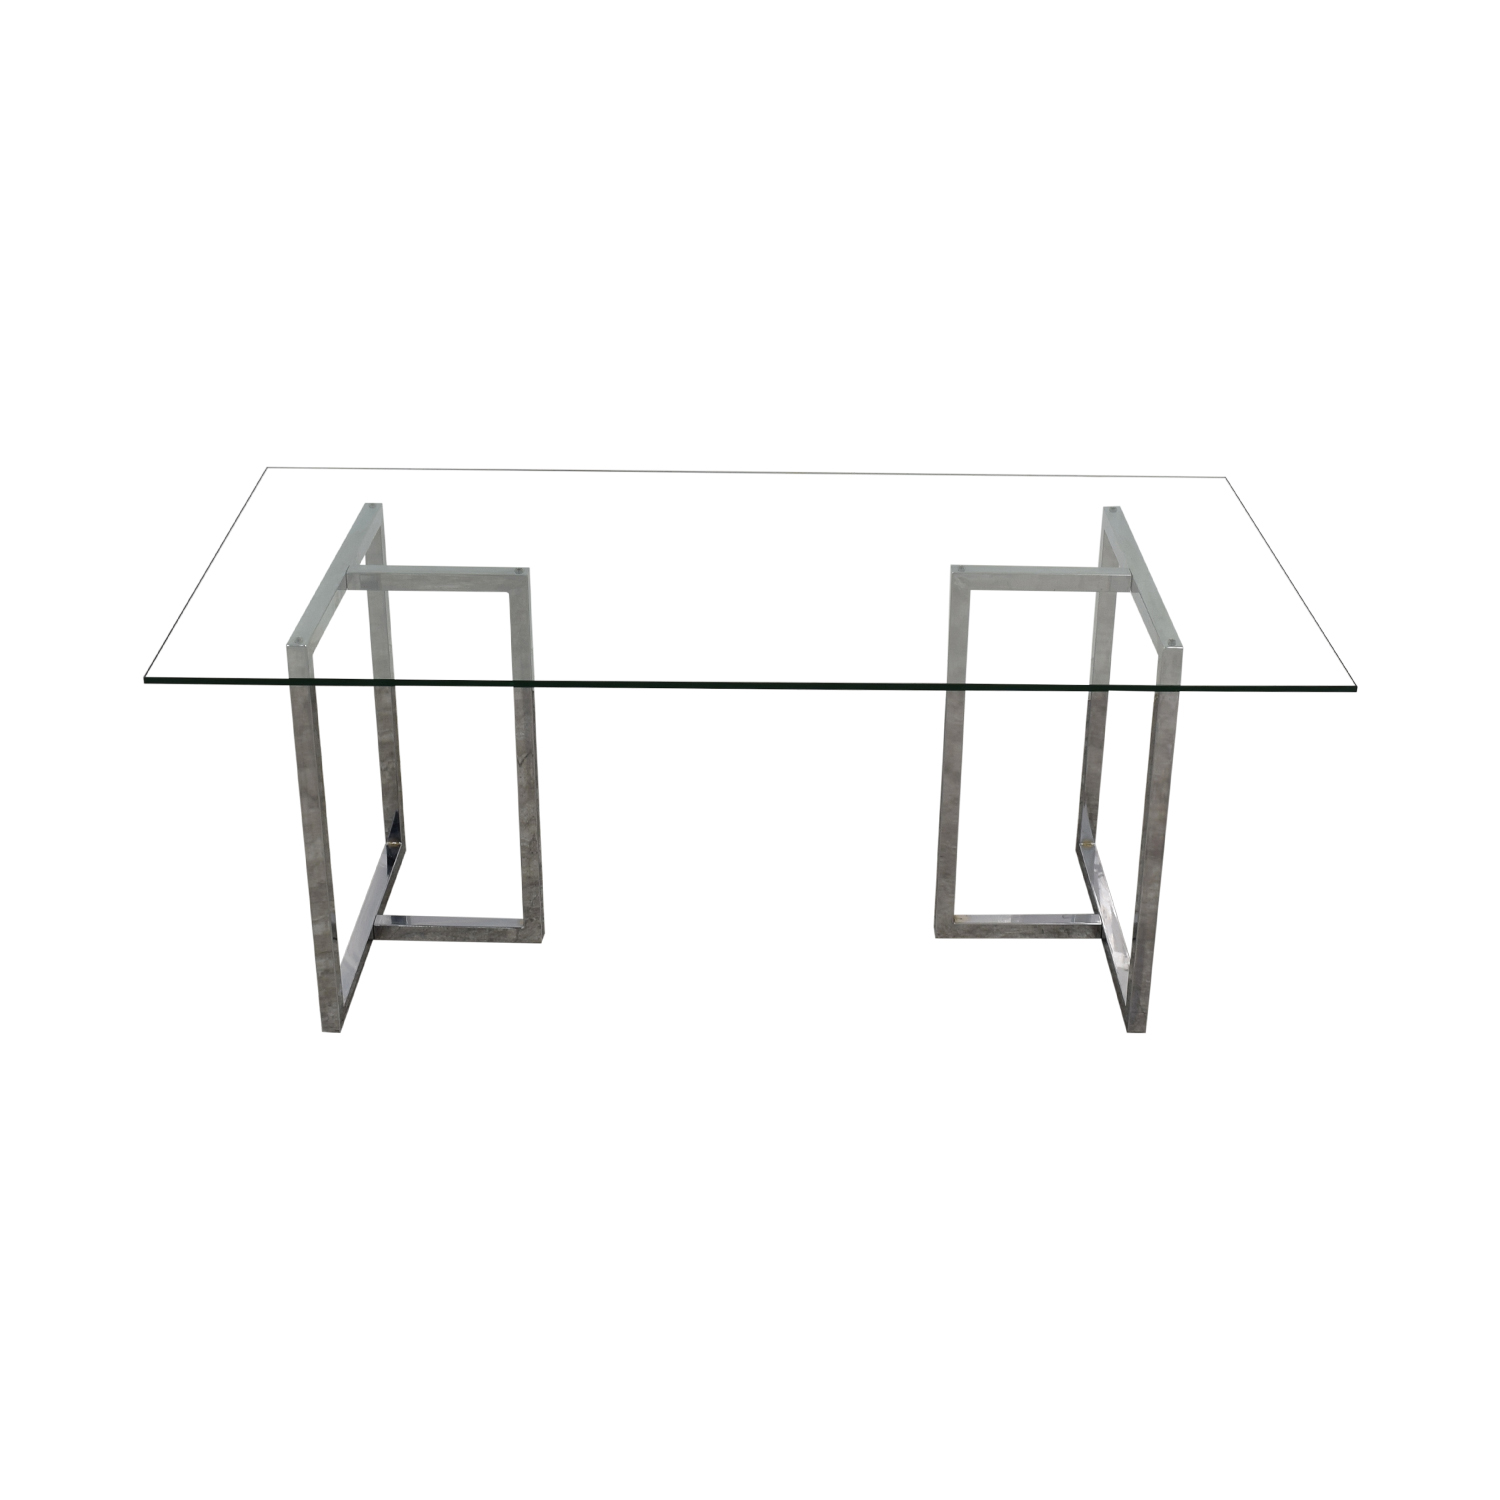 CB2 CB2 Glass and Chrome Table